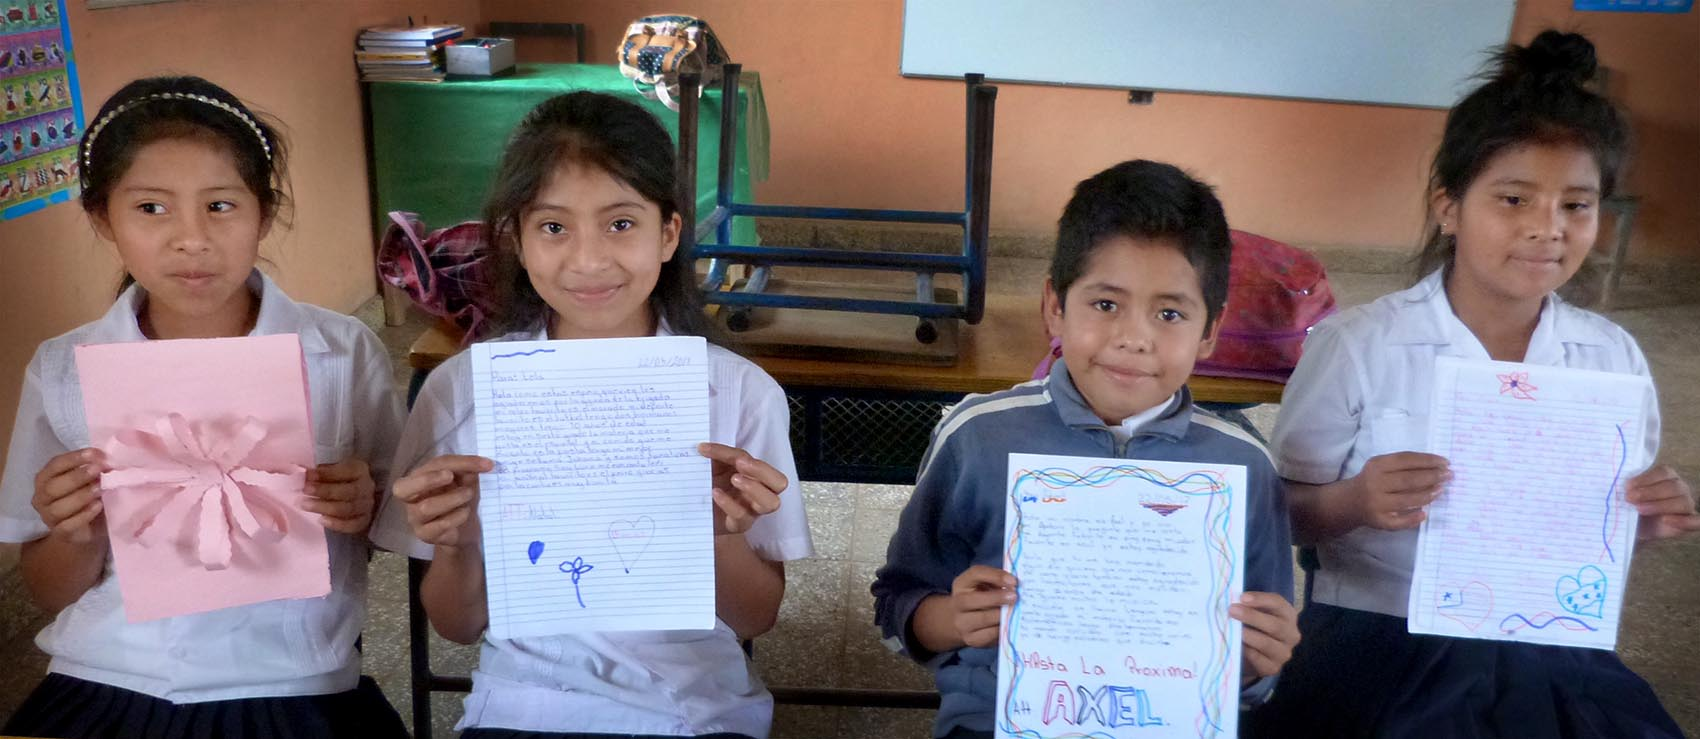 Lempira Elementary School students display their pen pal letter replies to Newtown students. (Karyn Miller-Medzon/Here & Now)